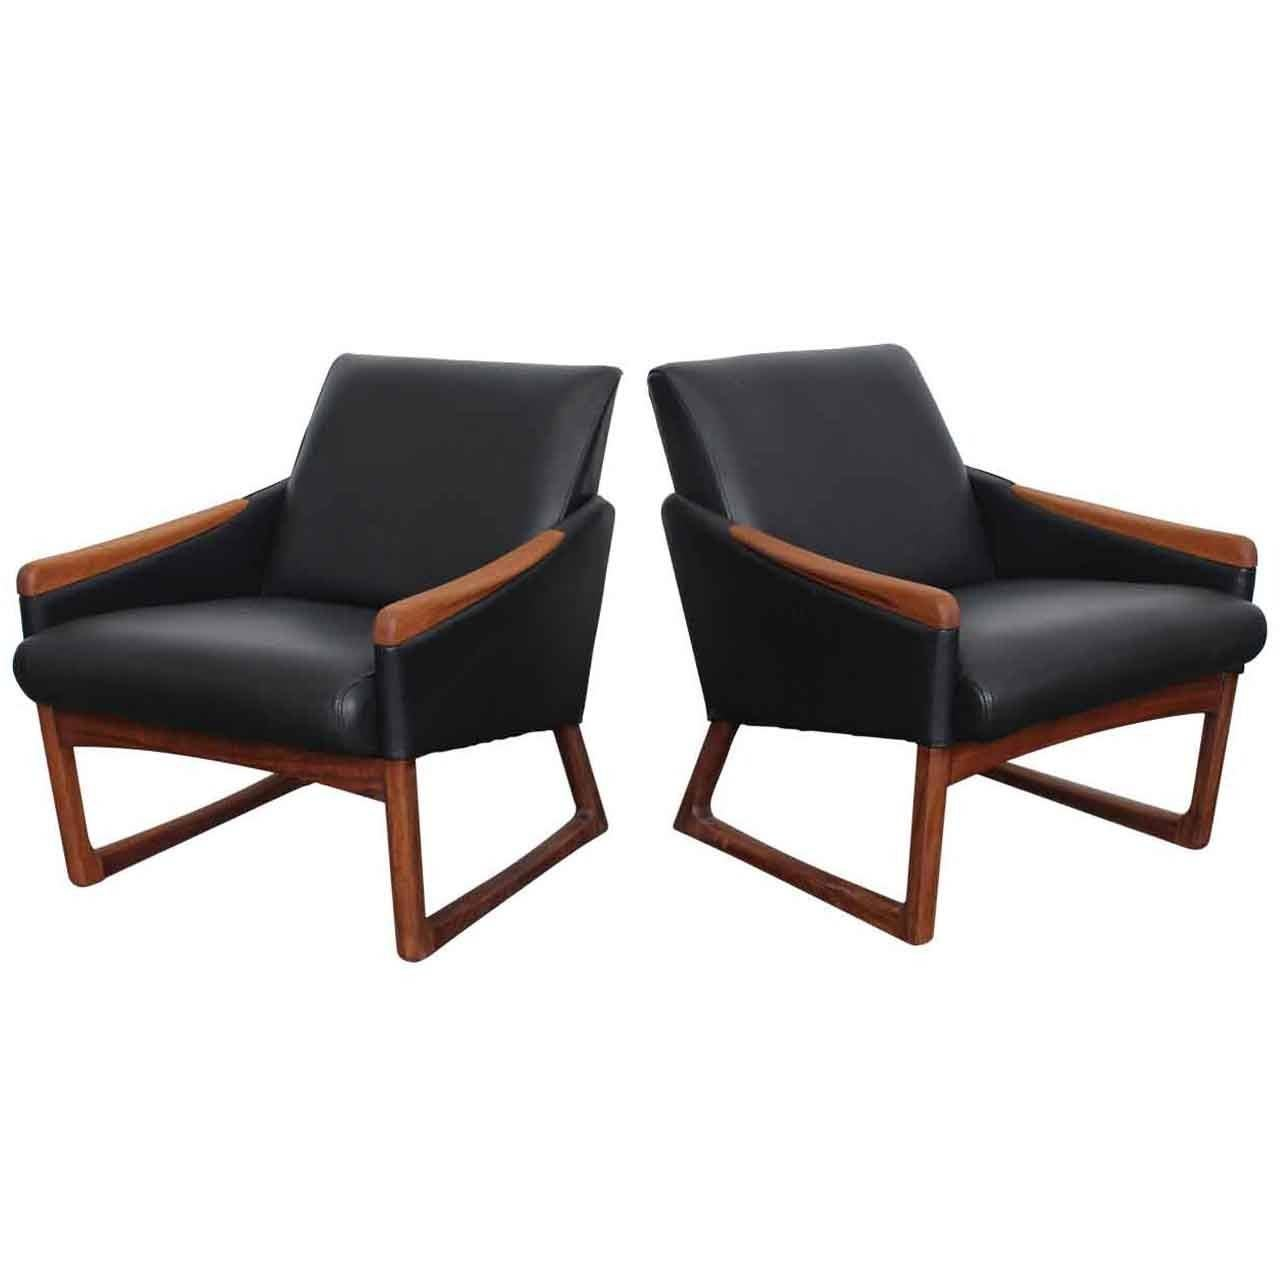 Mid century modern leather lounge chairs at 1stdibs Mid century chairs